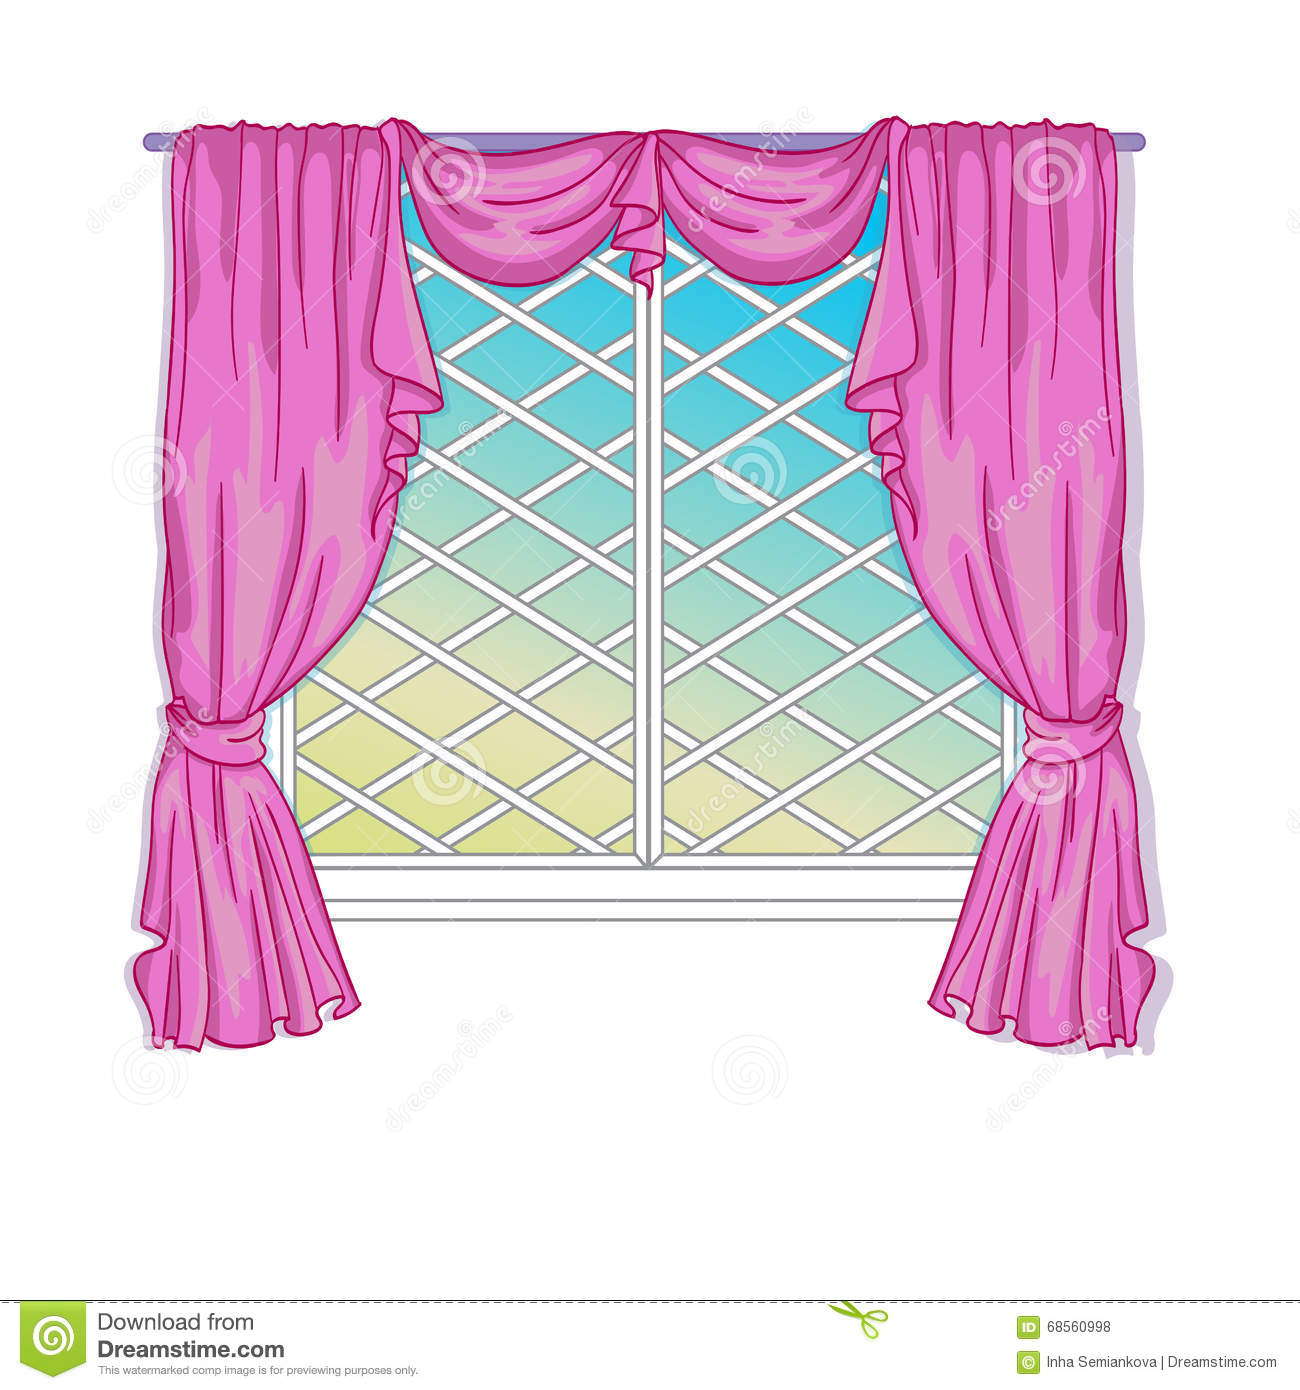 Princess Window With Curtains Stock Vector - Illustration of home ... for Window With Curtains Illustration  588gtk